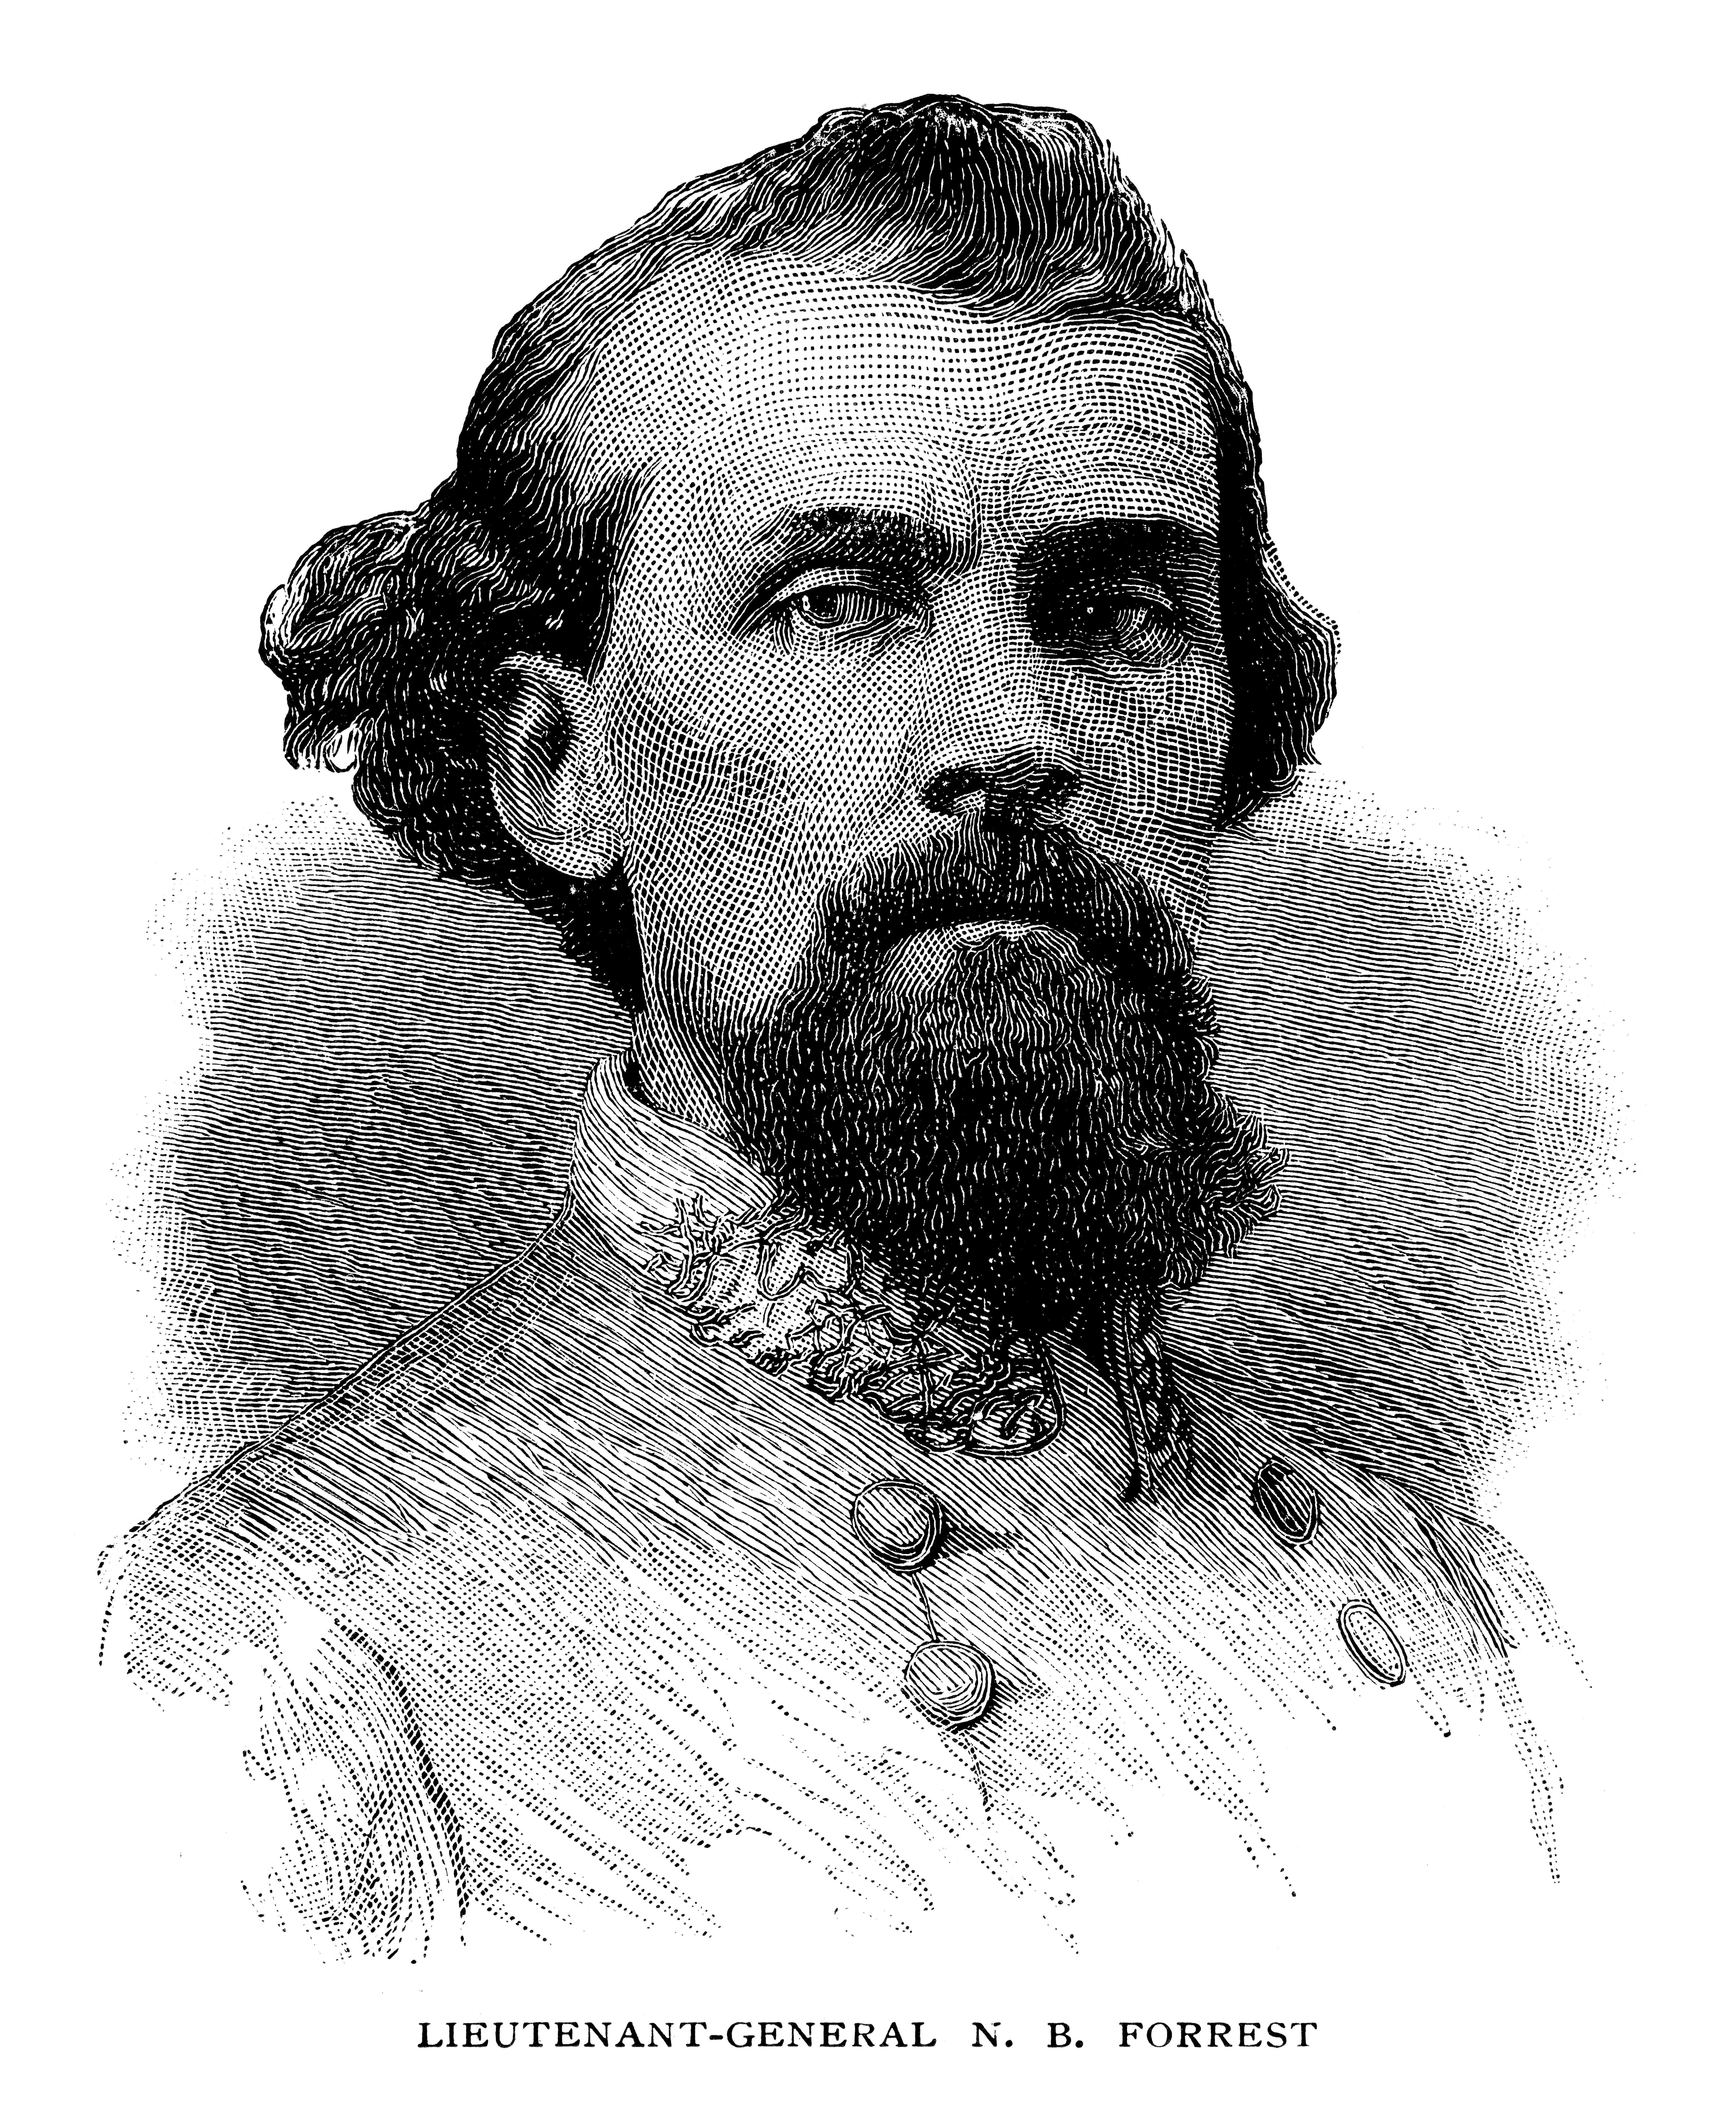 Nathan Bedford Forrest was a Confederate general and grand wizard of the KKK.